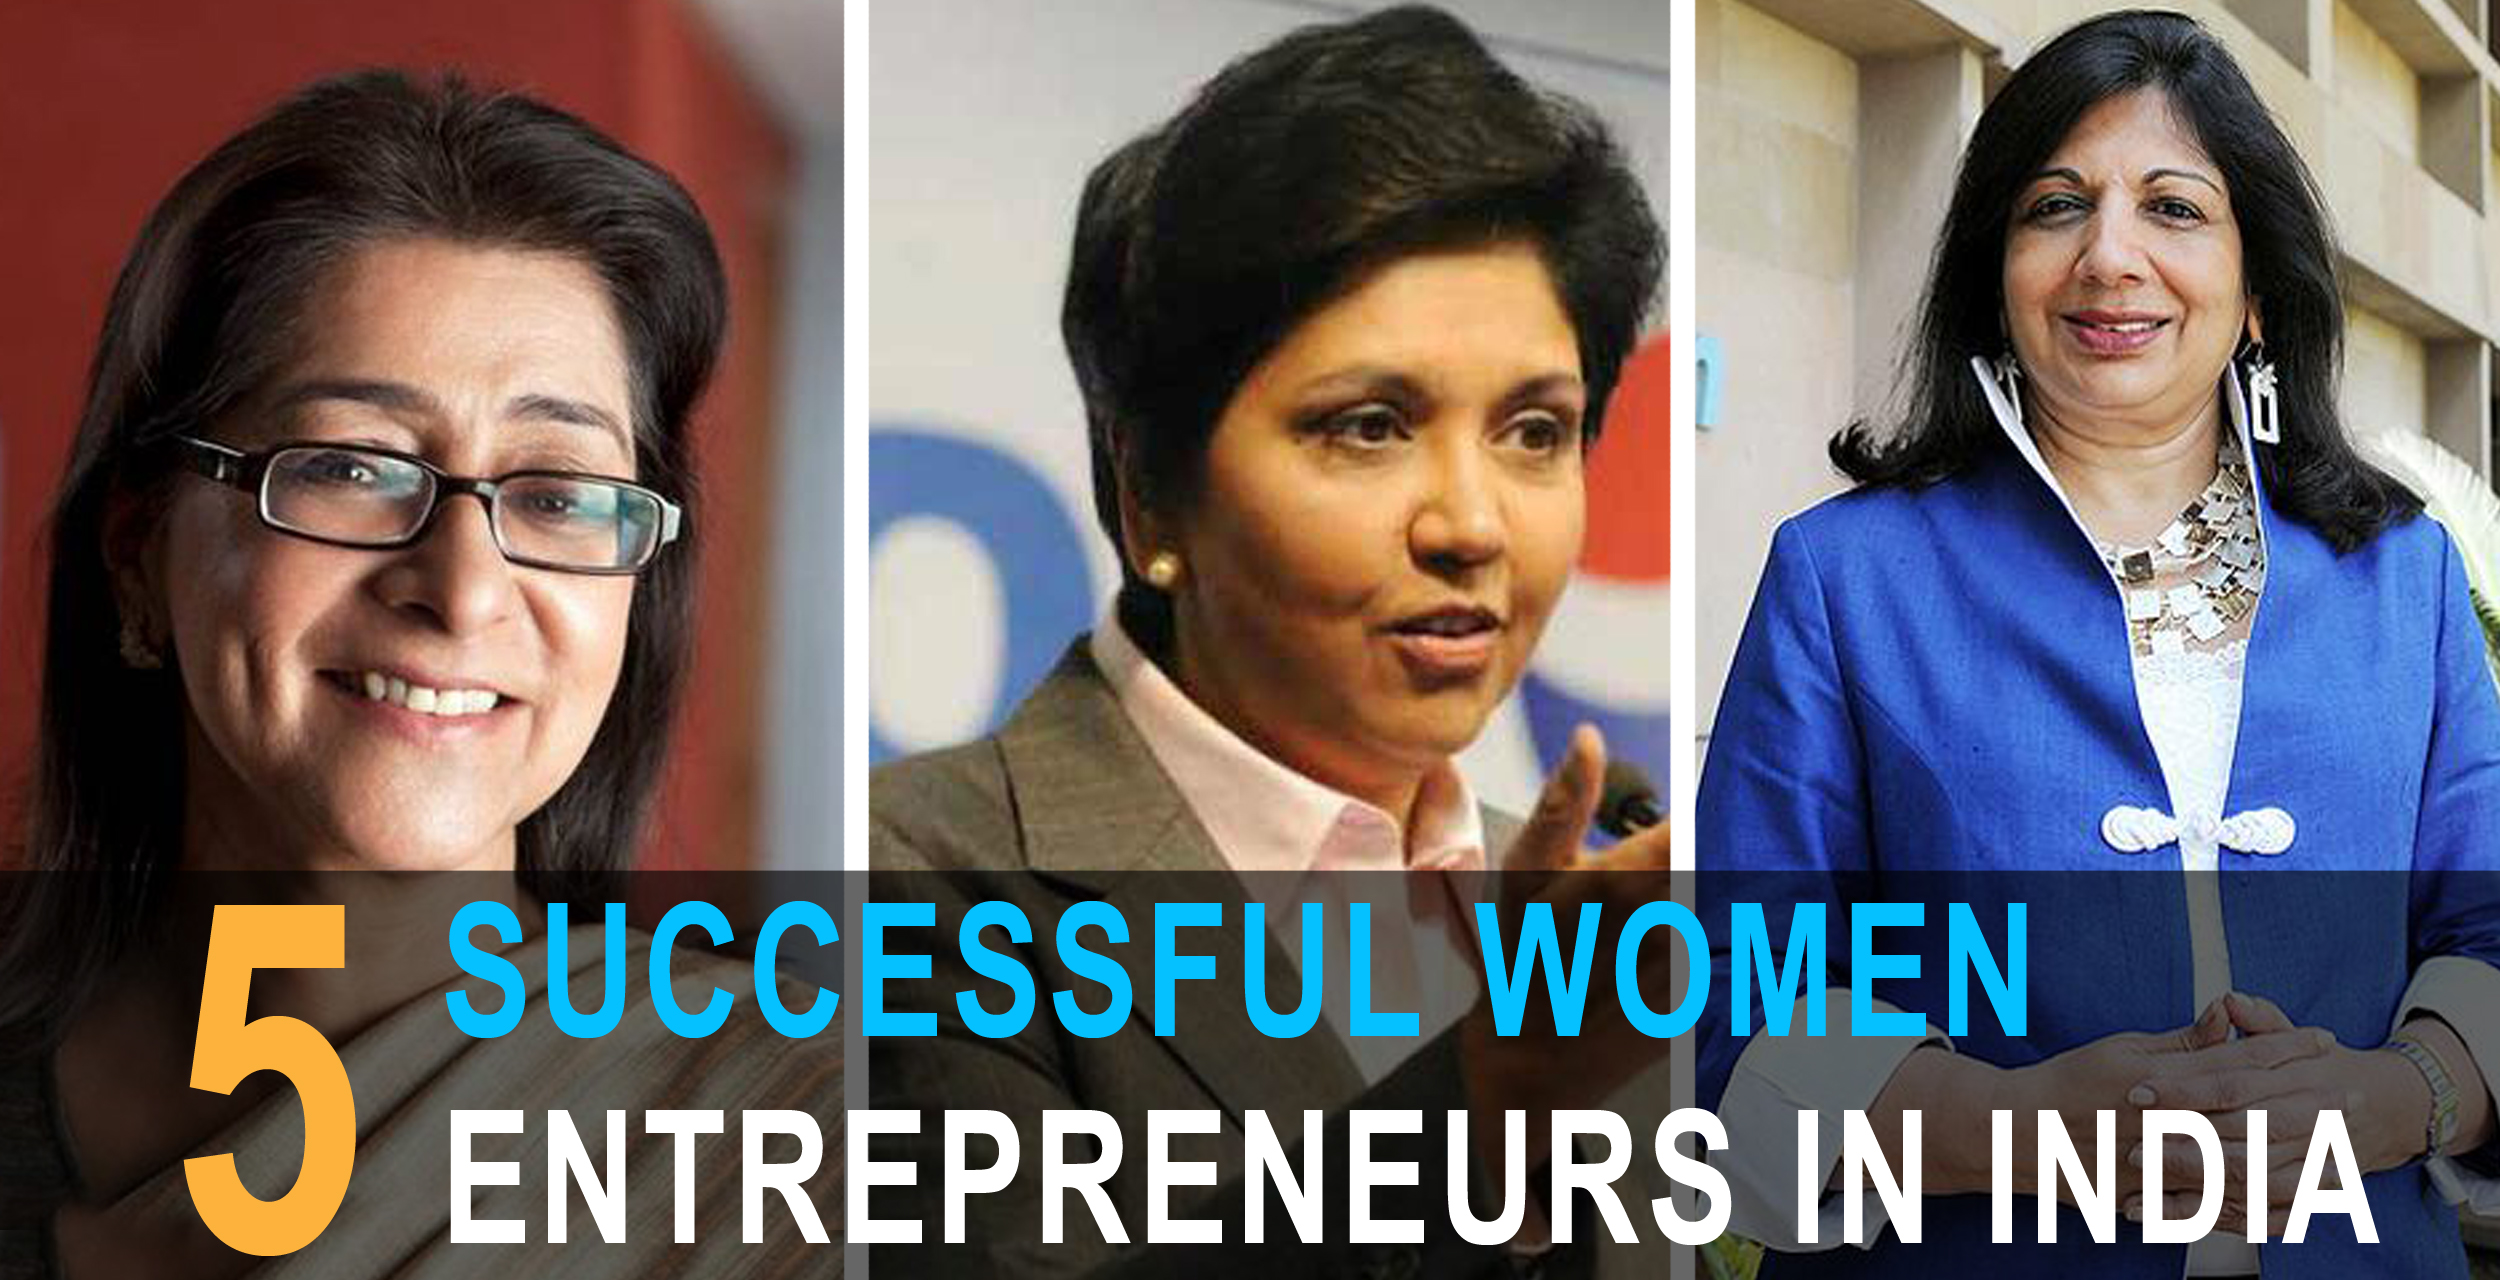 5 Successful Women Entrepreneurs in India